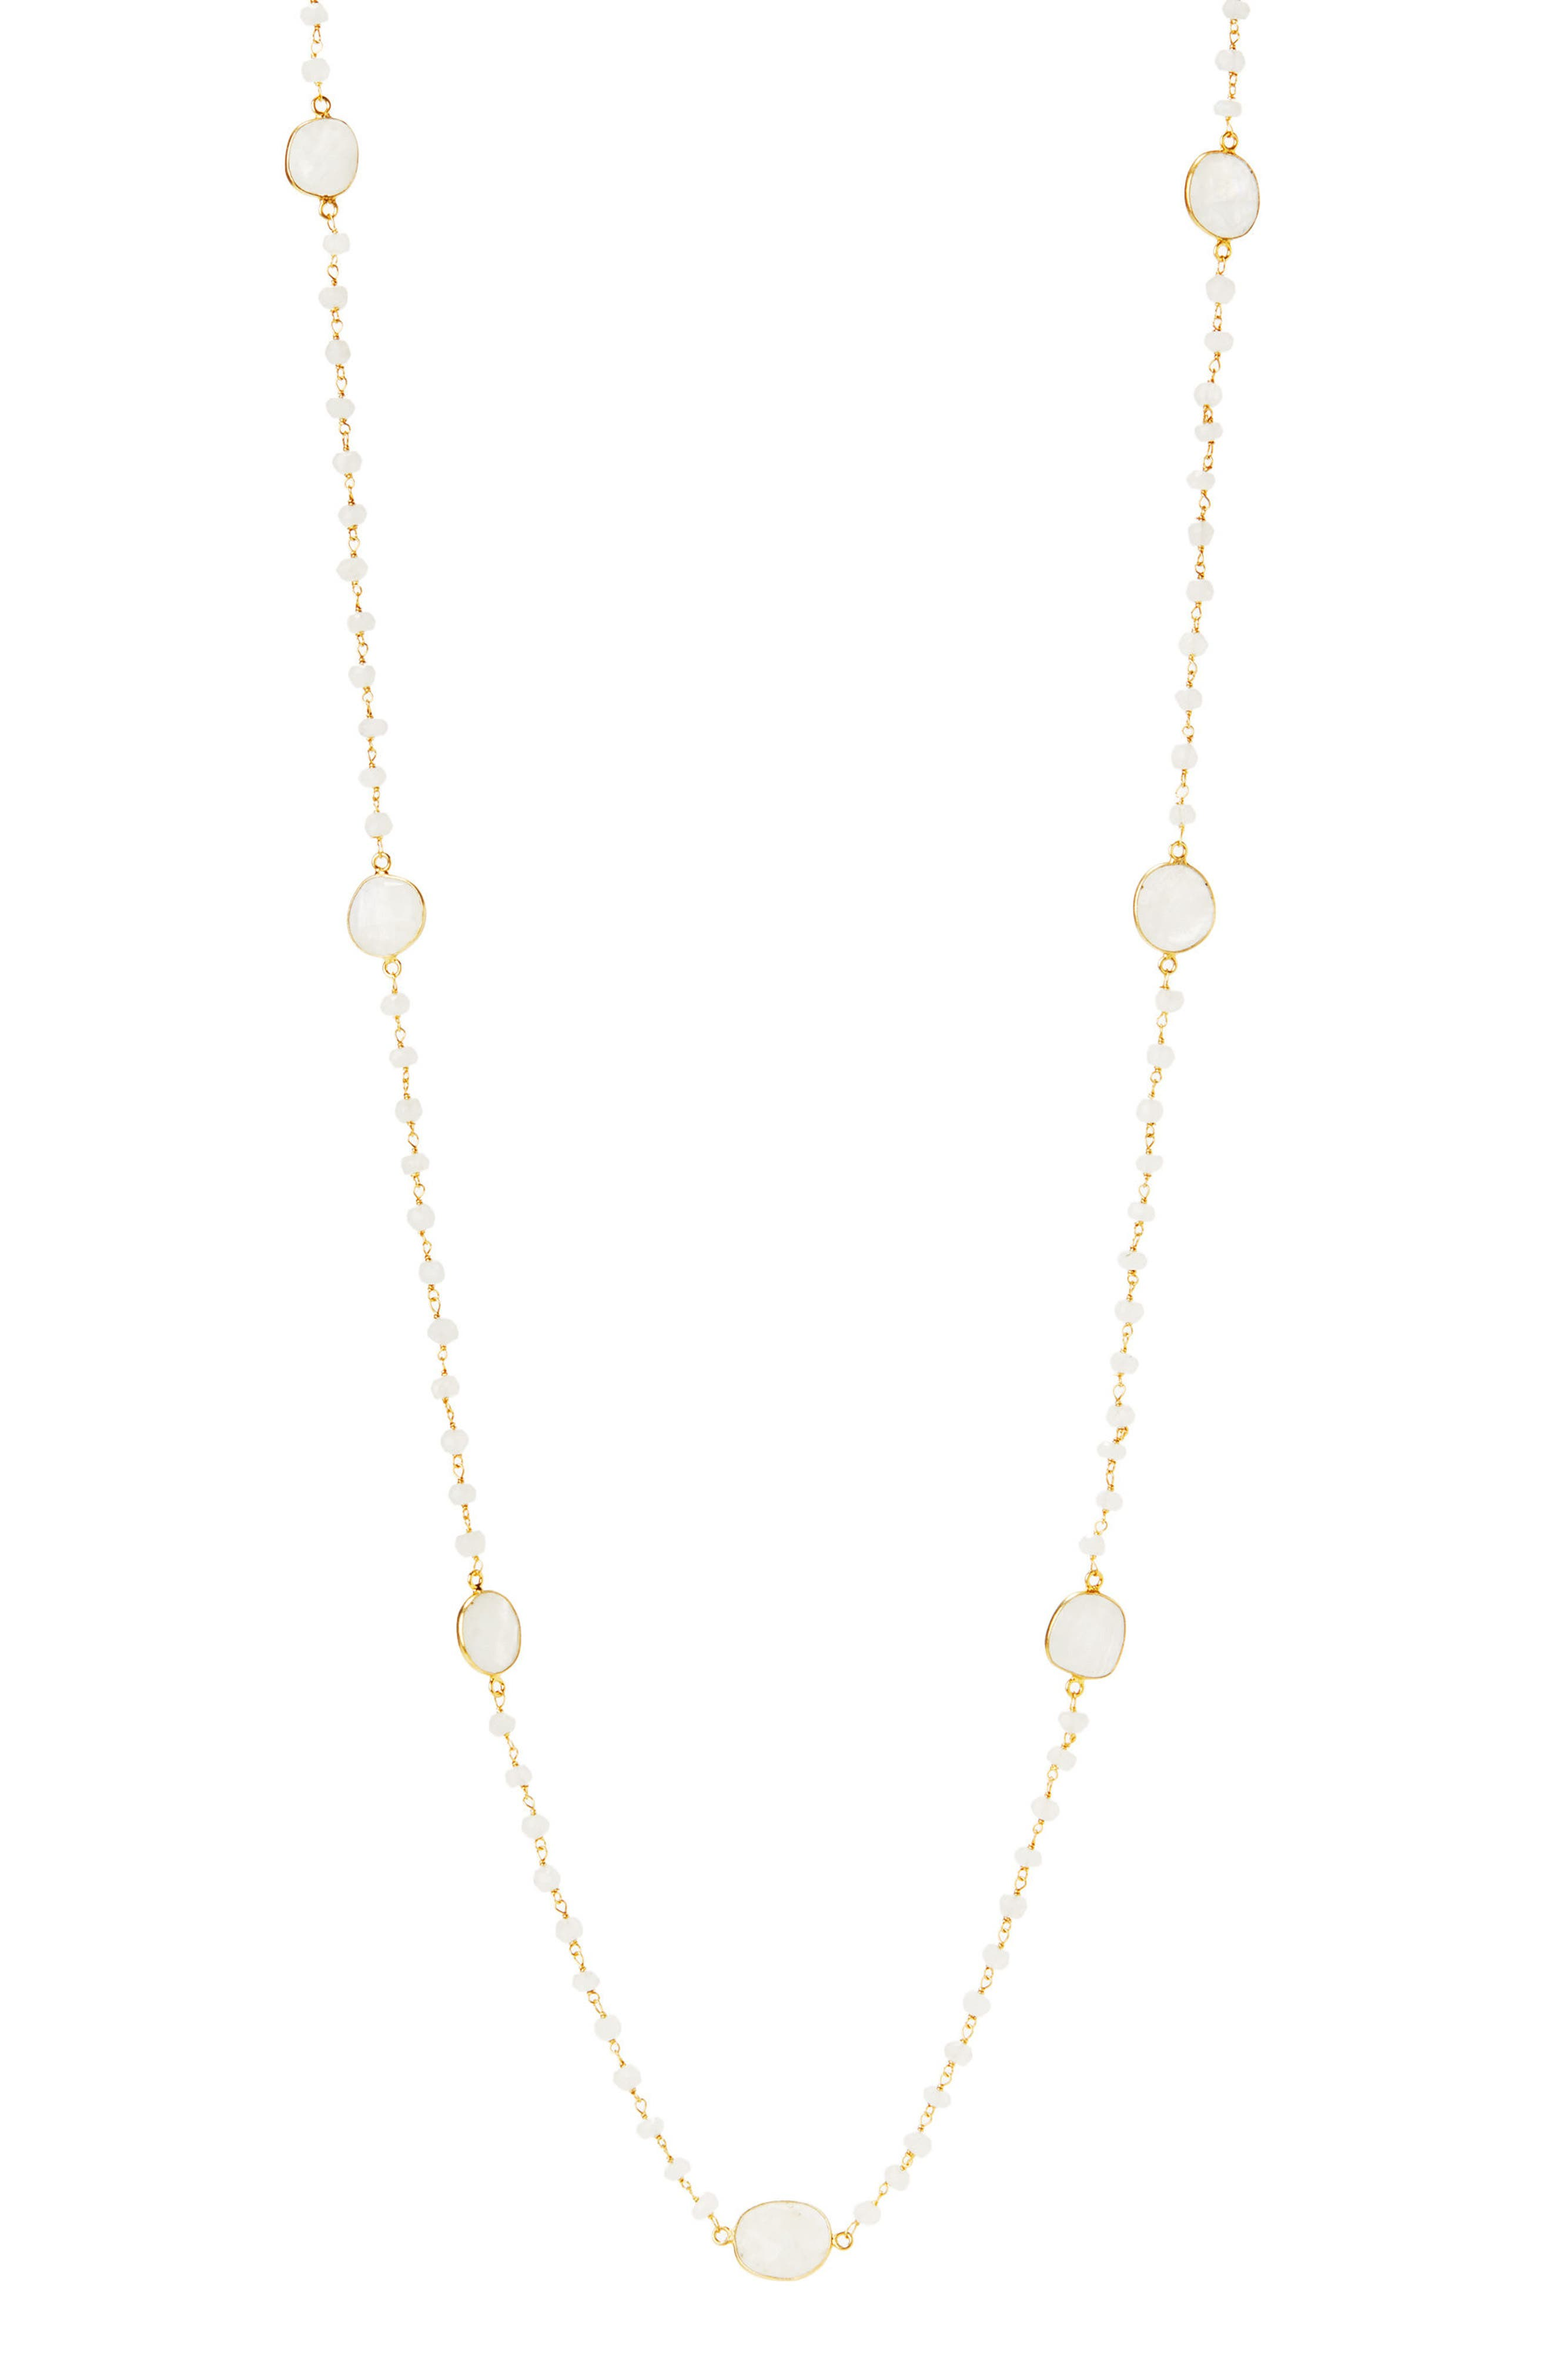 Neivs Station Necklace,                             Main thumbnail 1, color,                             104